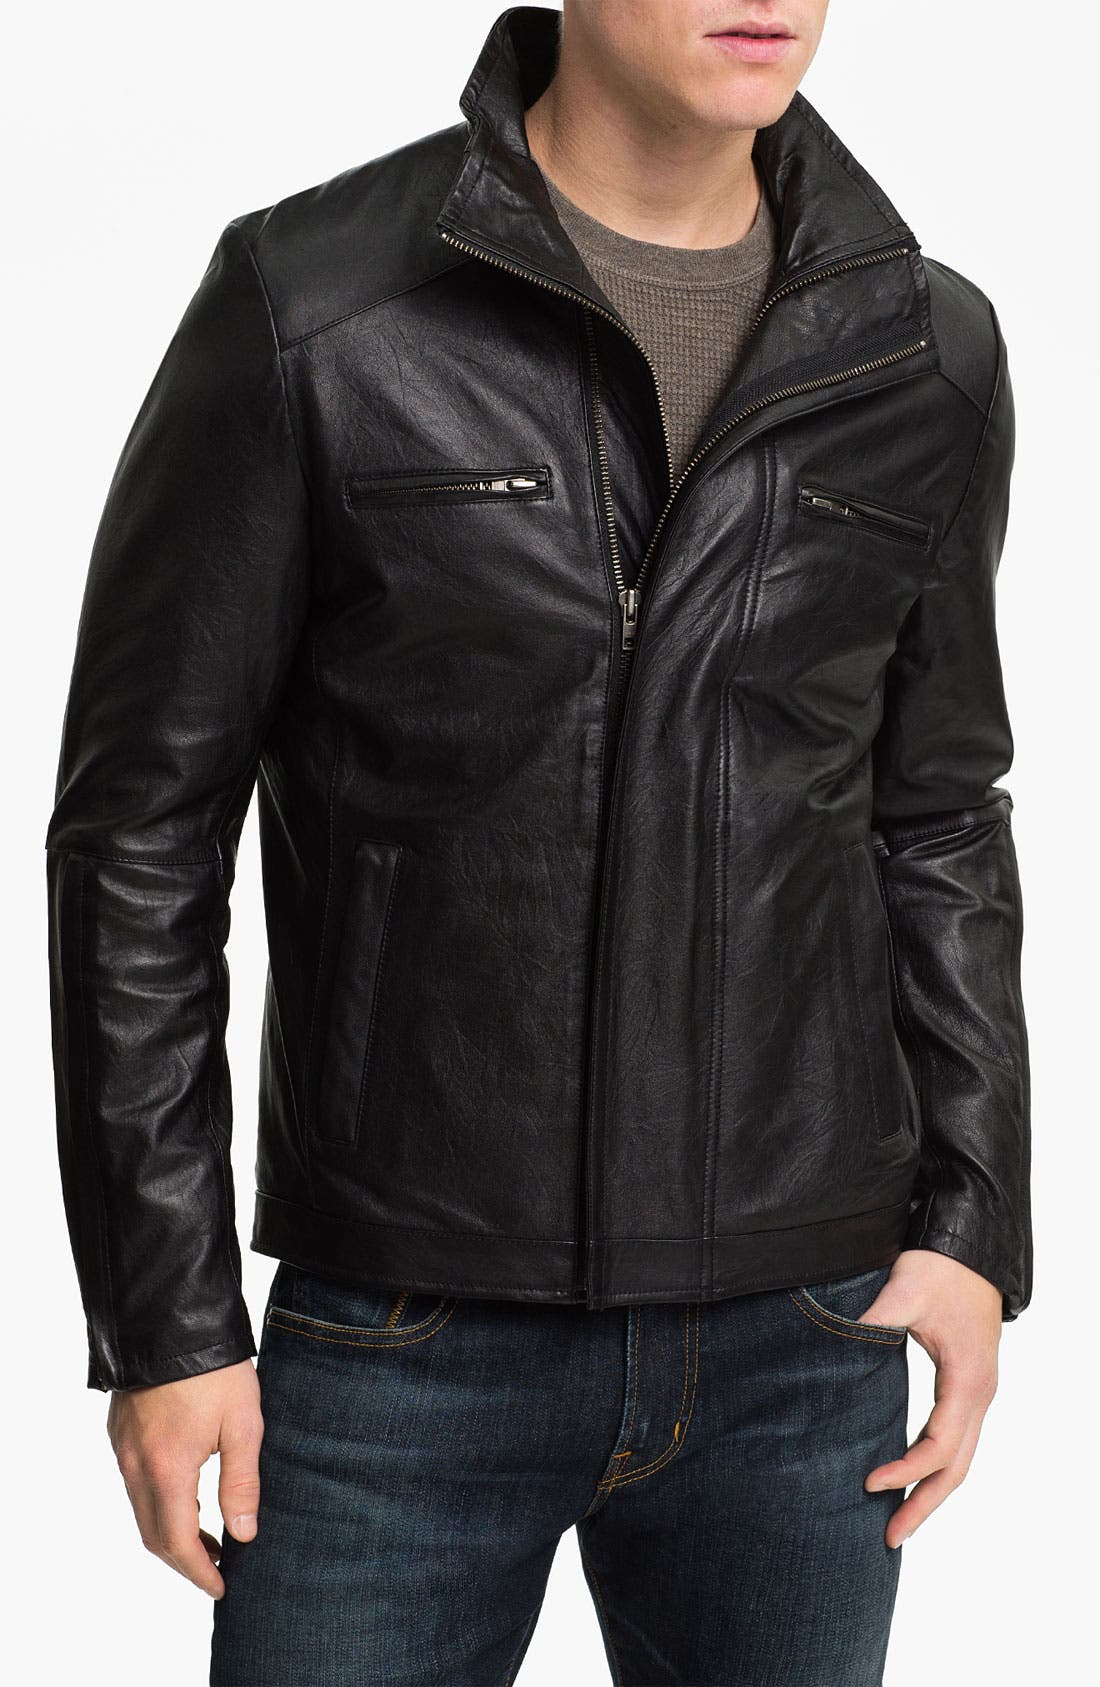 Alternate Image 1 Selected - Zachary Prell 'Barclay' Leather Jacket